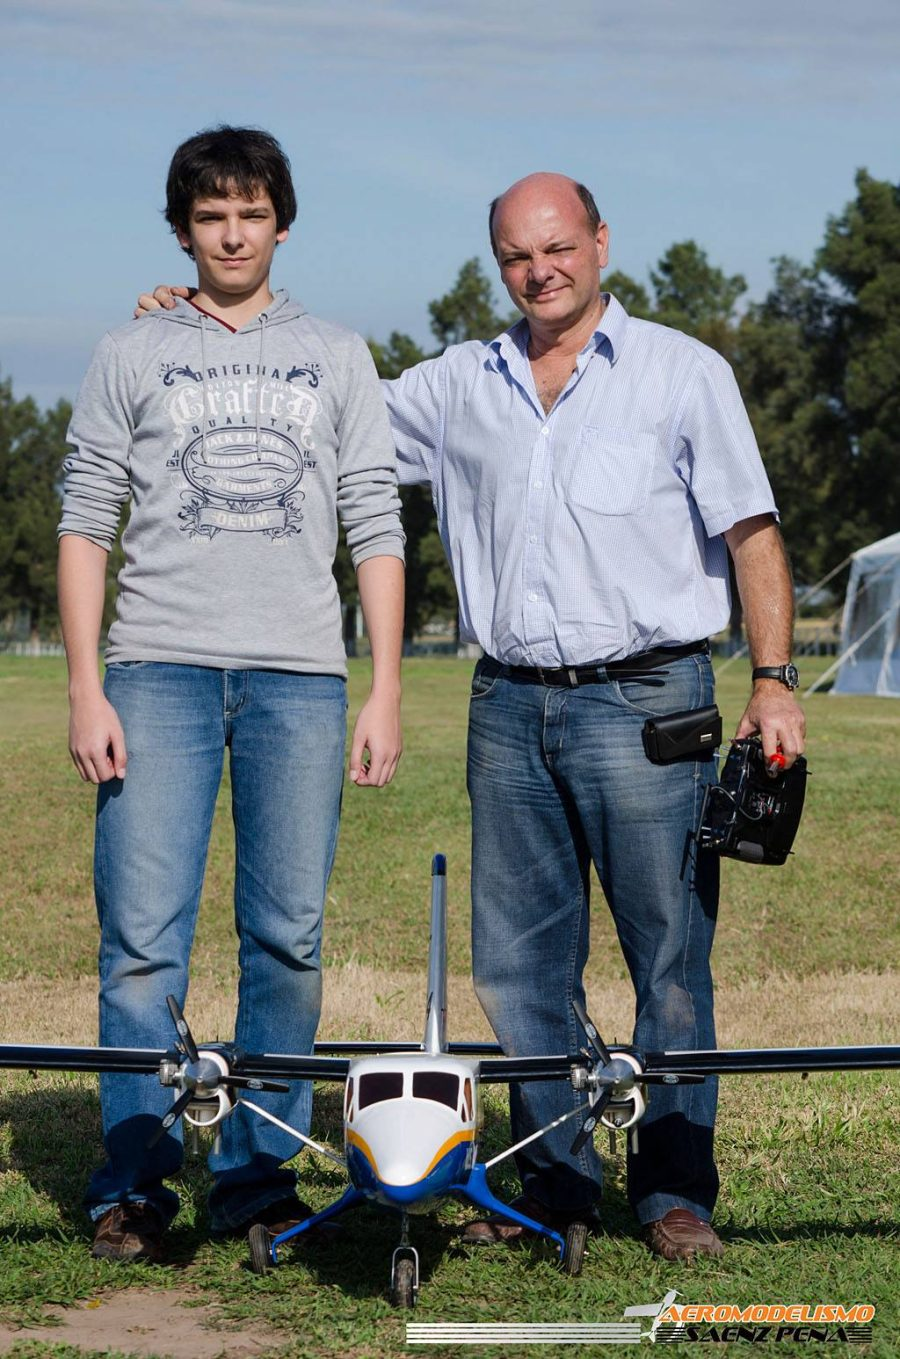 Two men standing in front of a small model plane aircraft